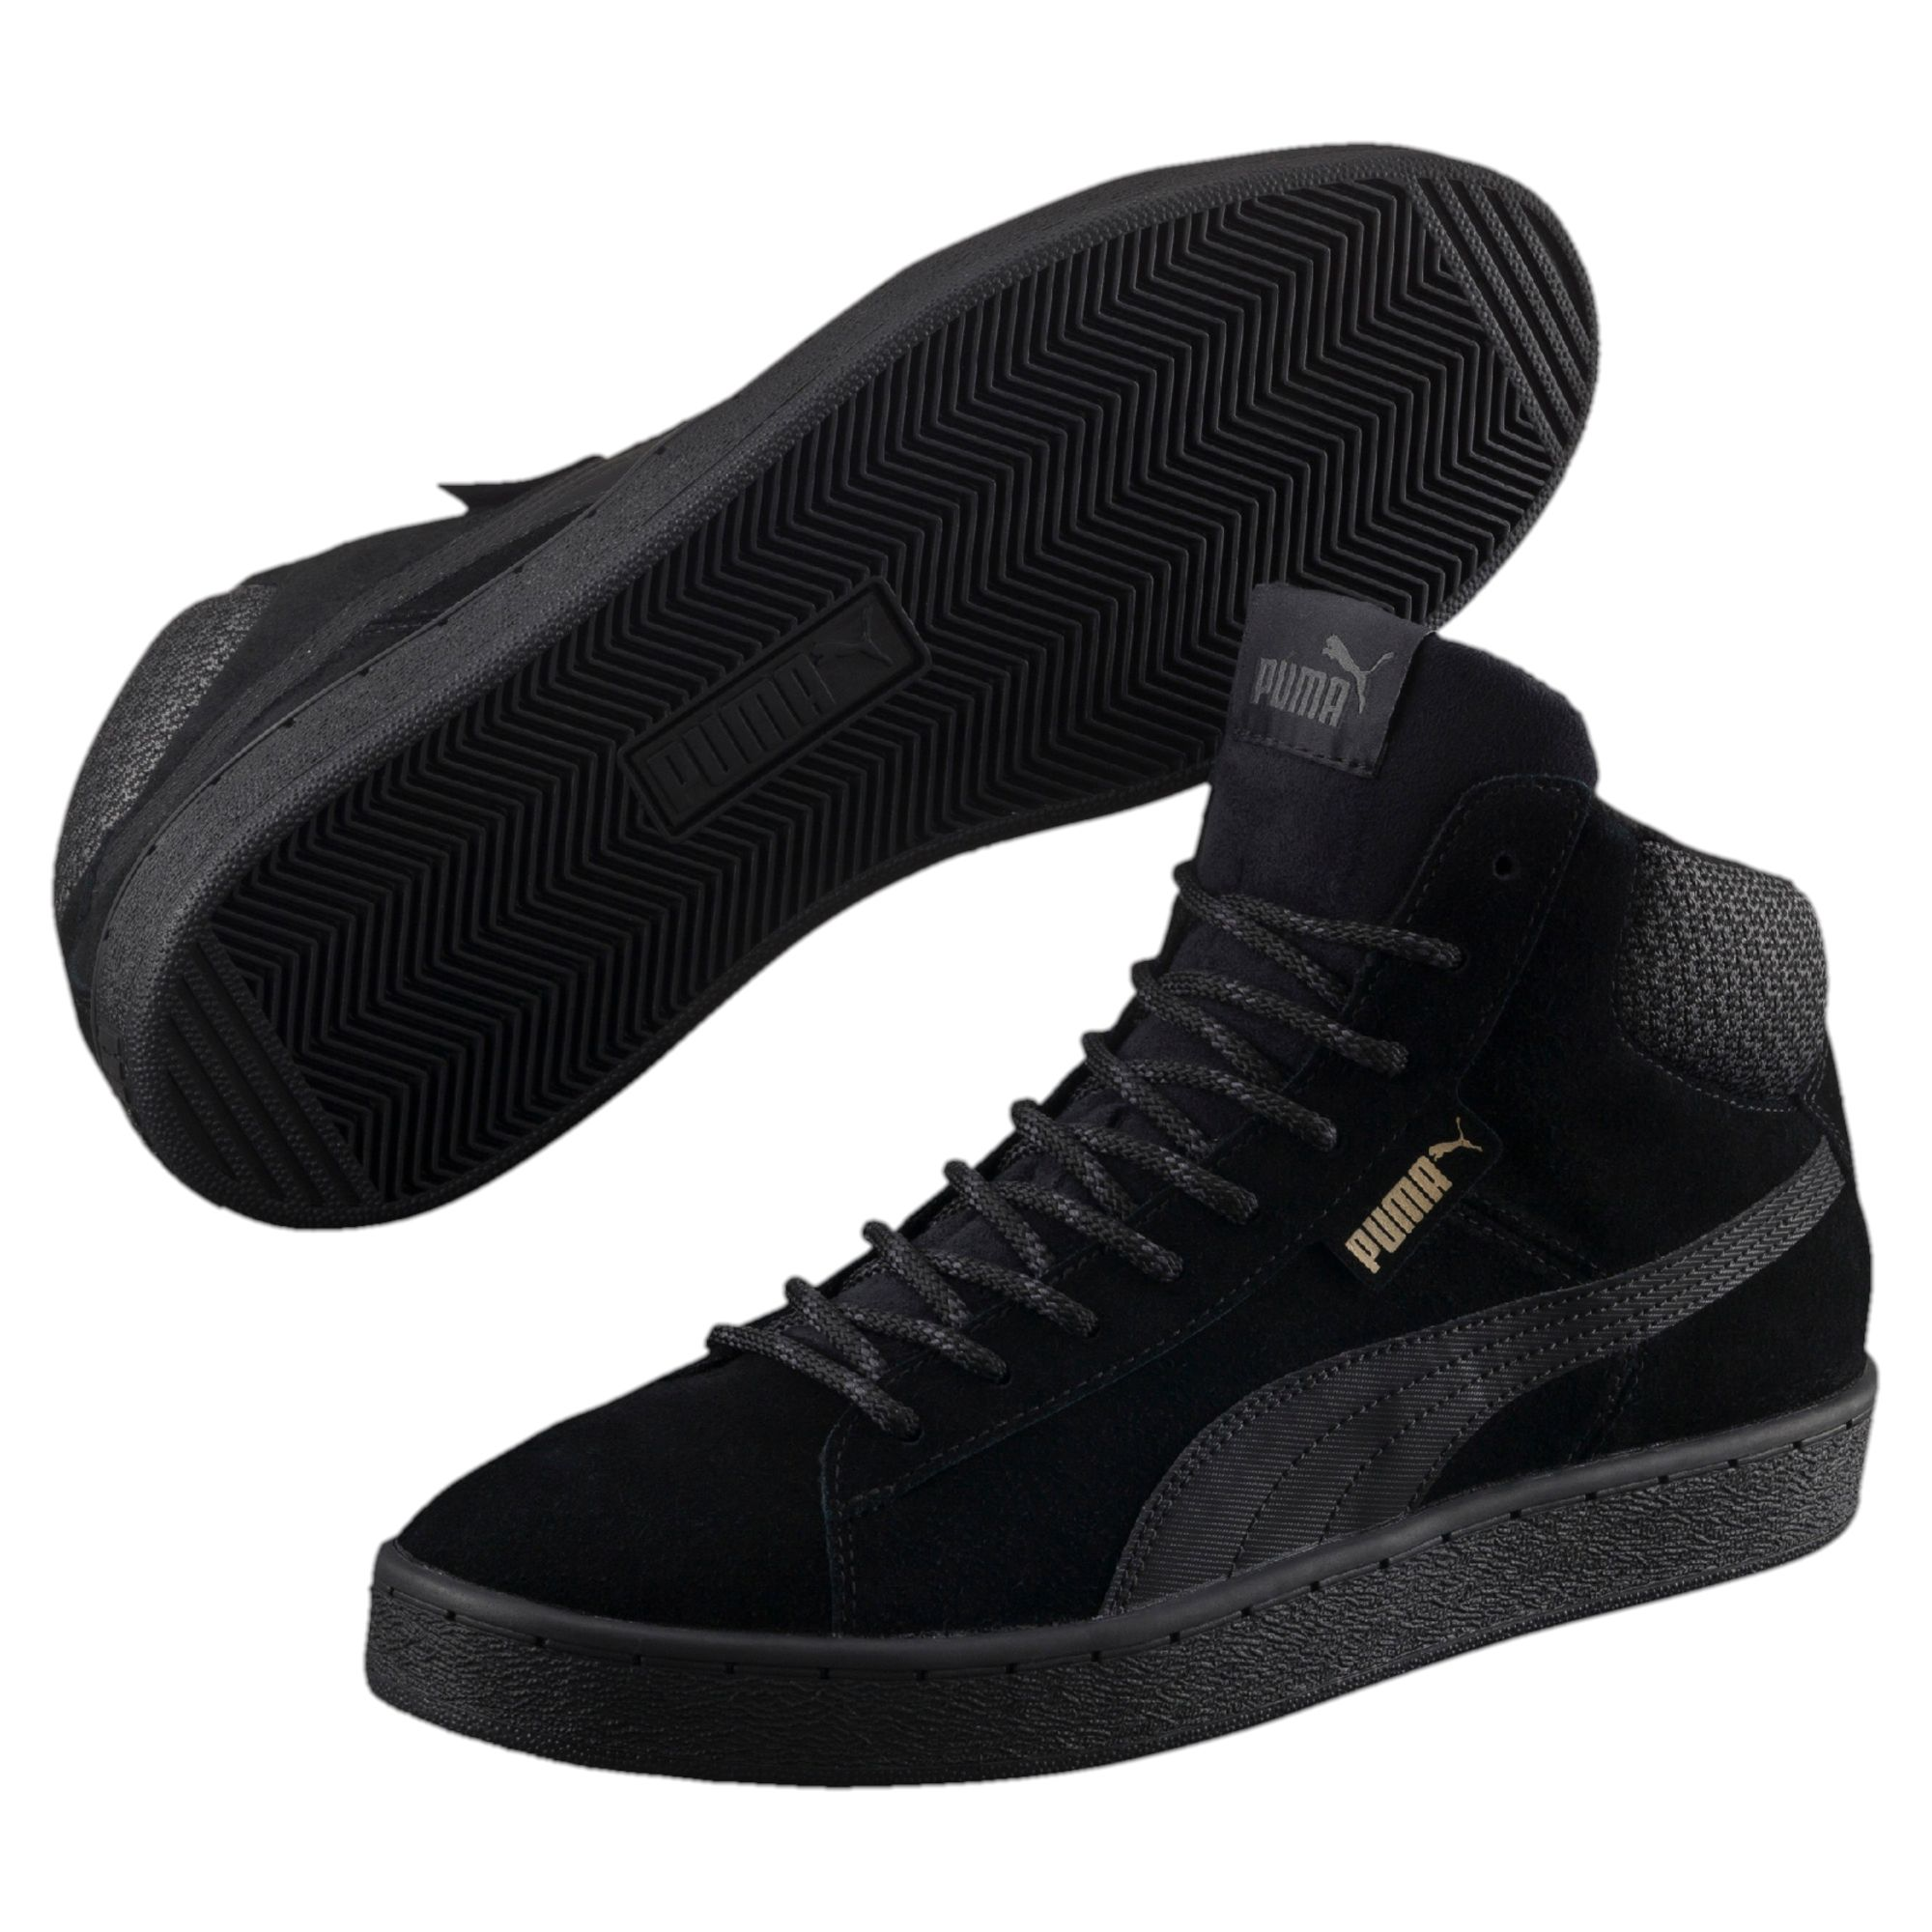 Dc Shoes High Tops Uk